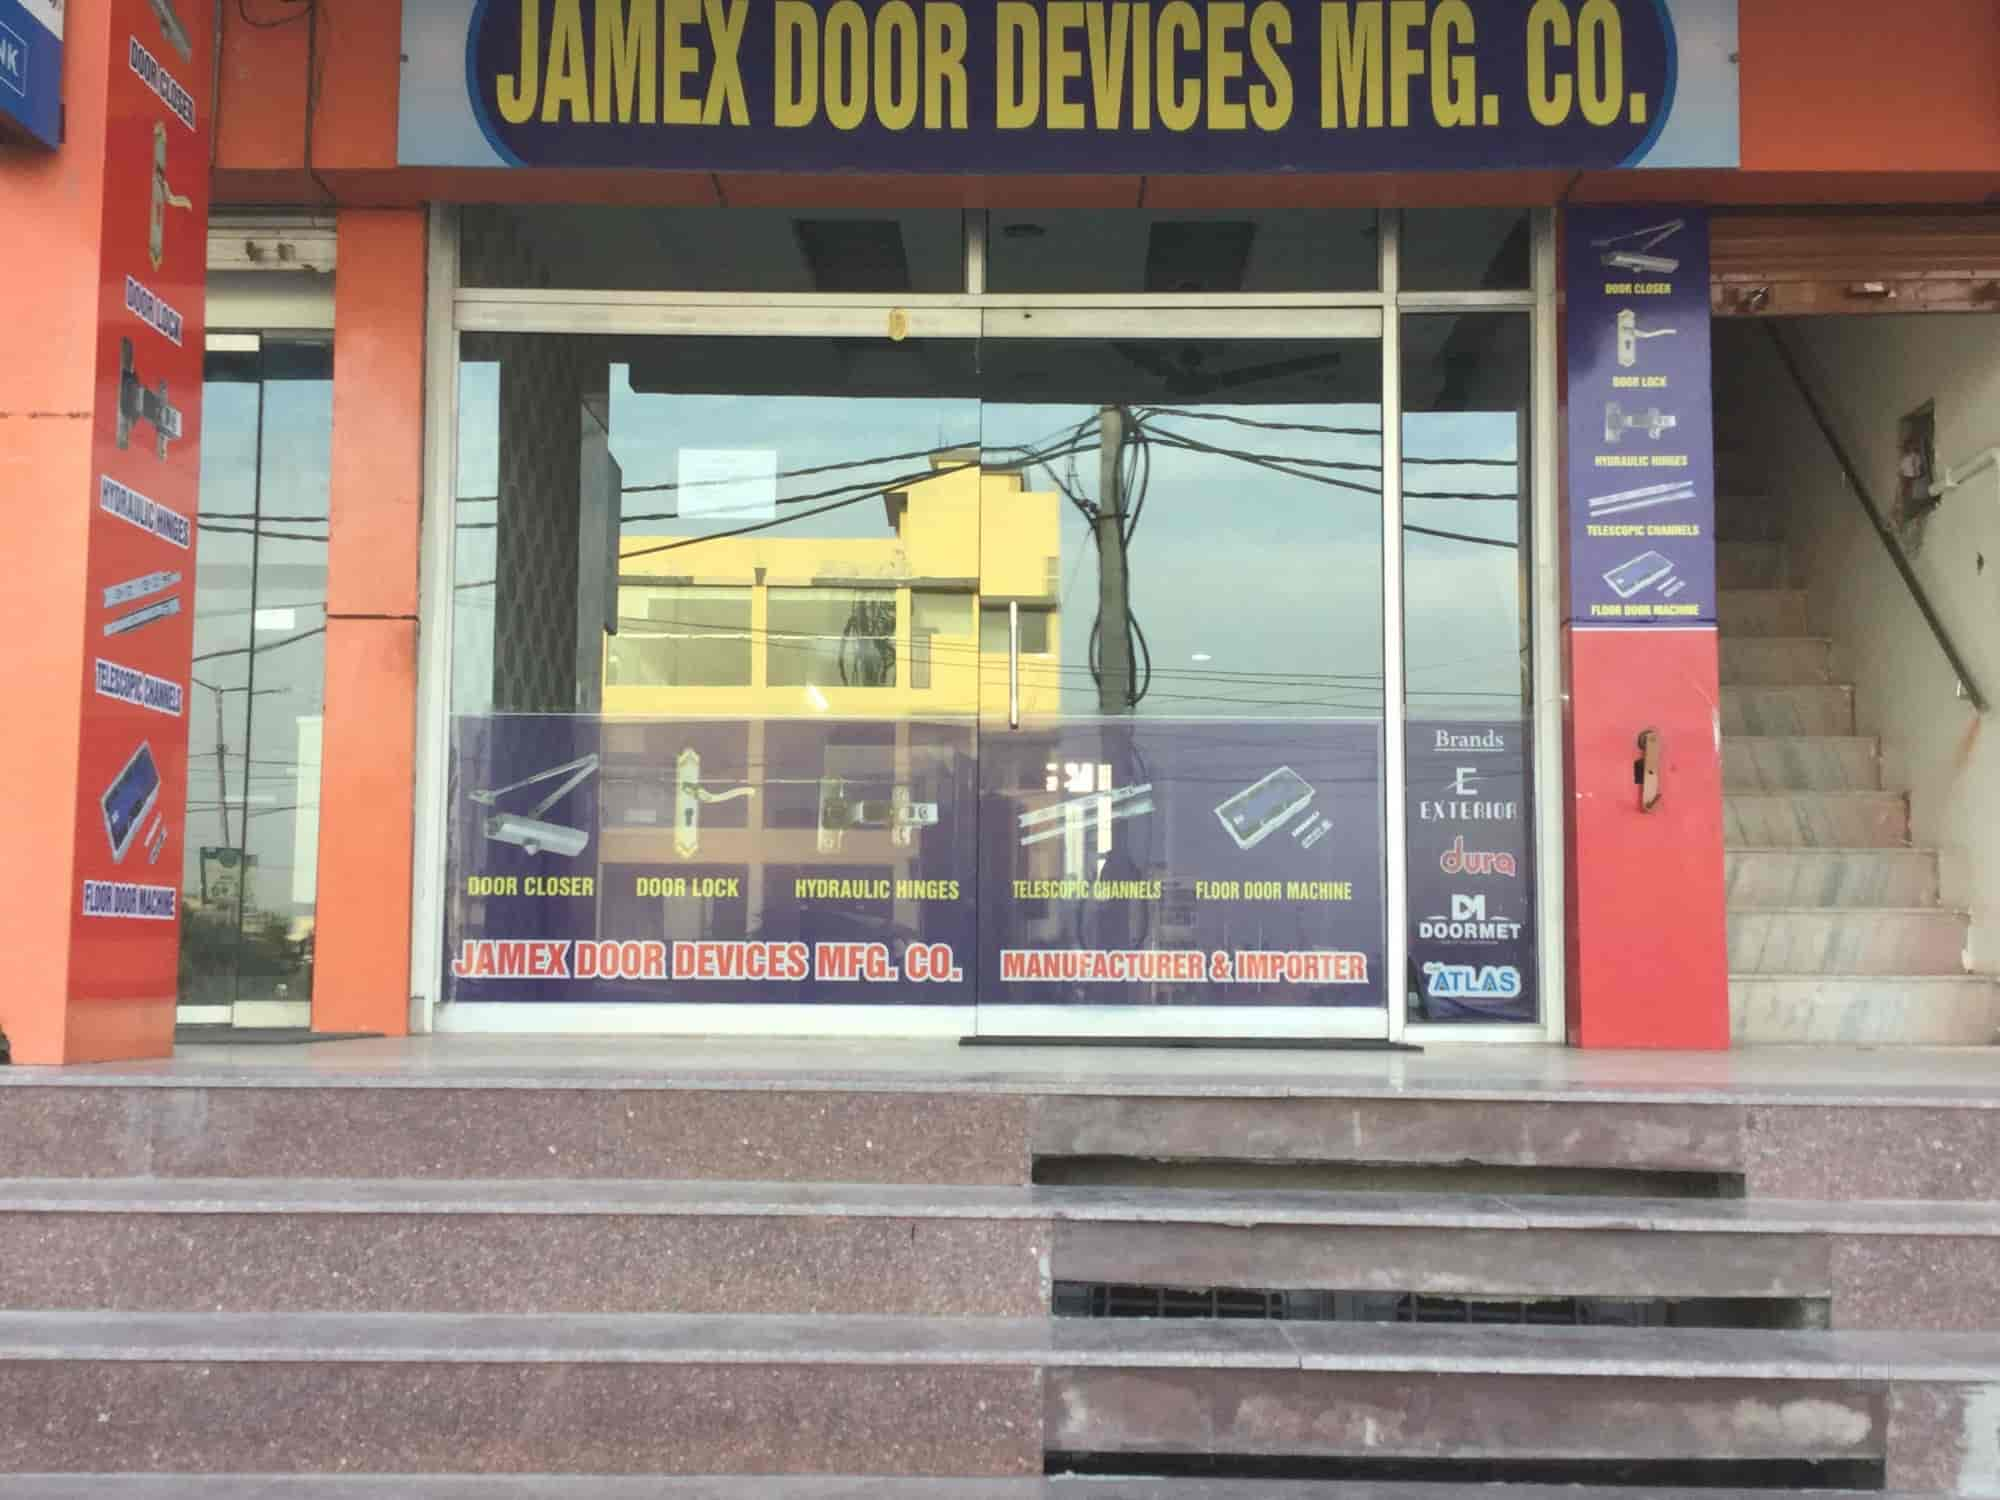 JAMEX DOOR Devices Mfg. Co. Kharar - Hardware Dealers in Chandigarh - Justdial & JAMEX DOOR Devices Mfg. Co. Kharar - Hardware Dealers in Chandigarh ...